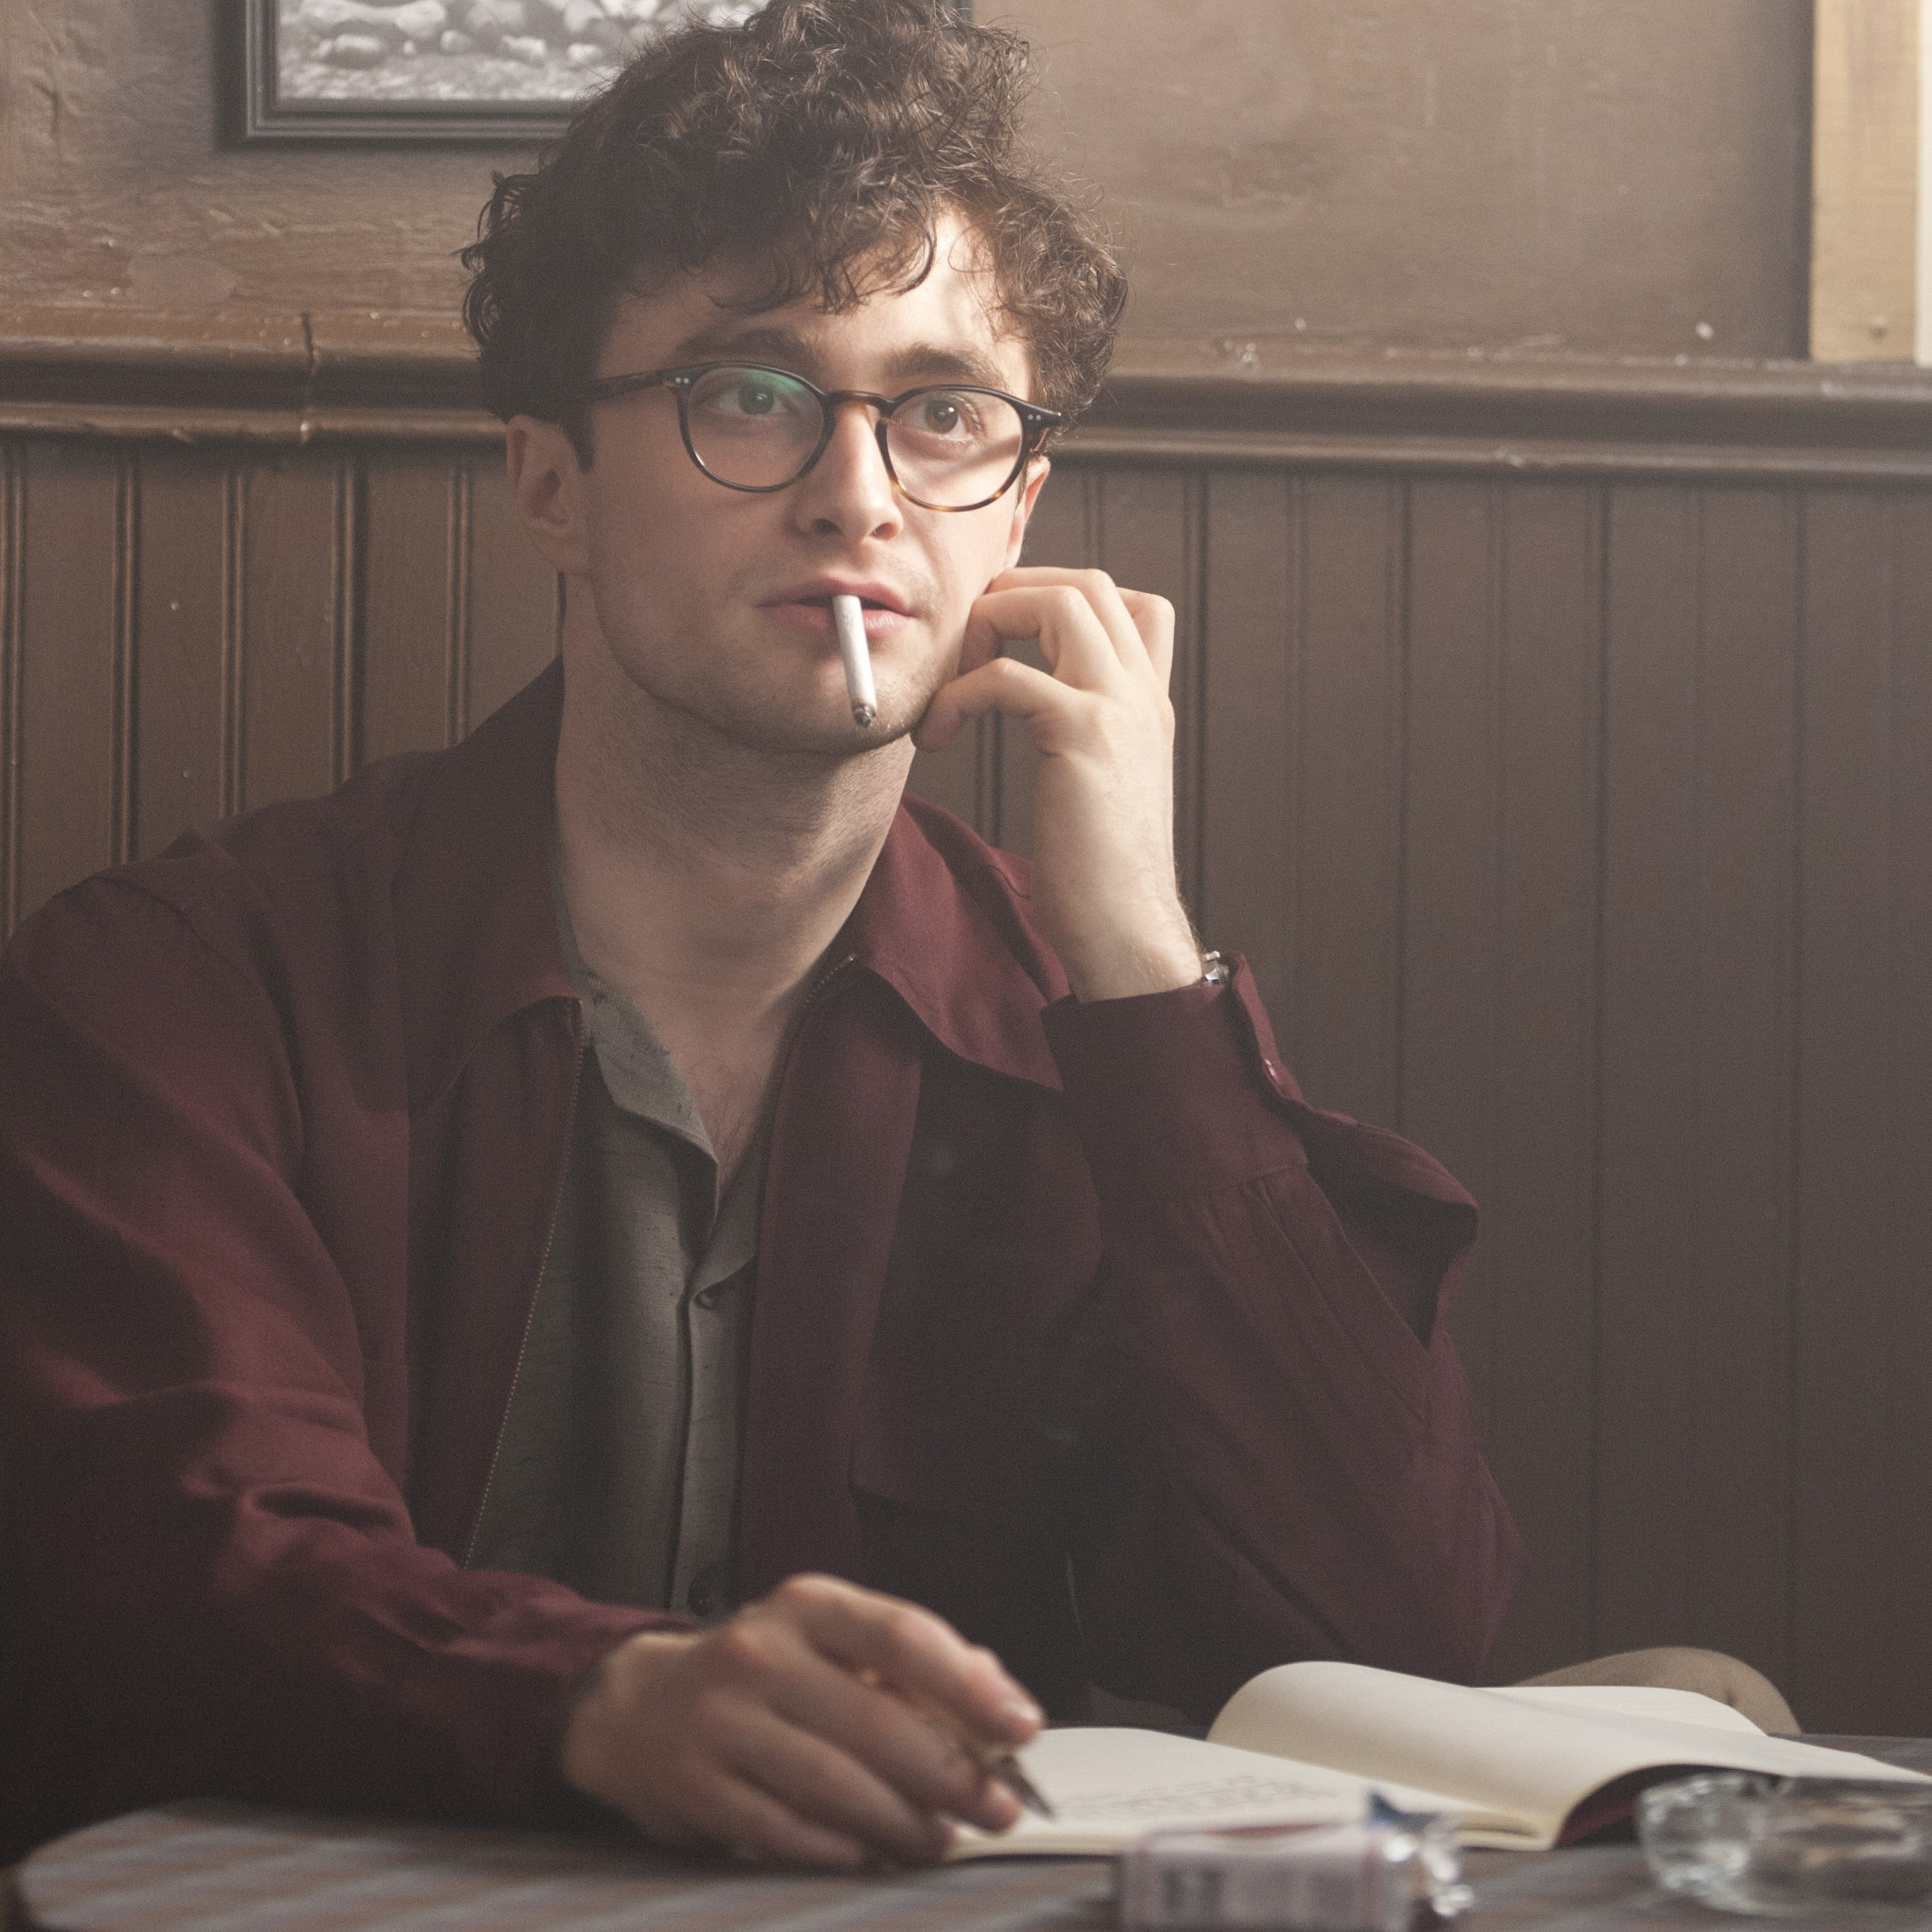 Radcliffe plays Allen Ginsberg in the new film Kill Your Darlings, about Ginsberg's friendship with Jack Kerouac -- and his entanglement with literary provocateur Lucien Carr.